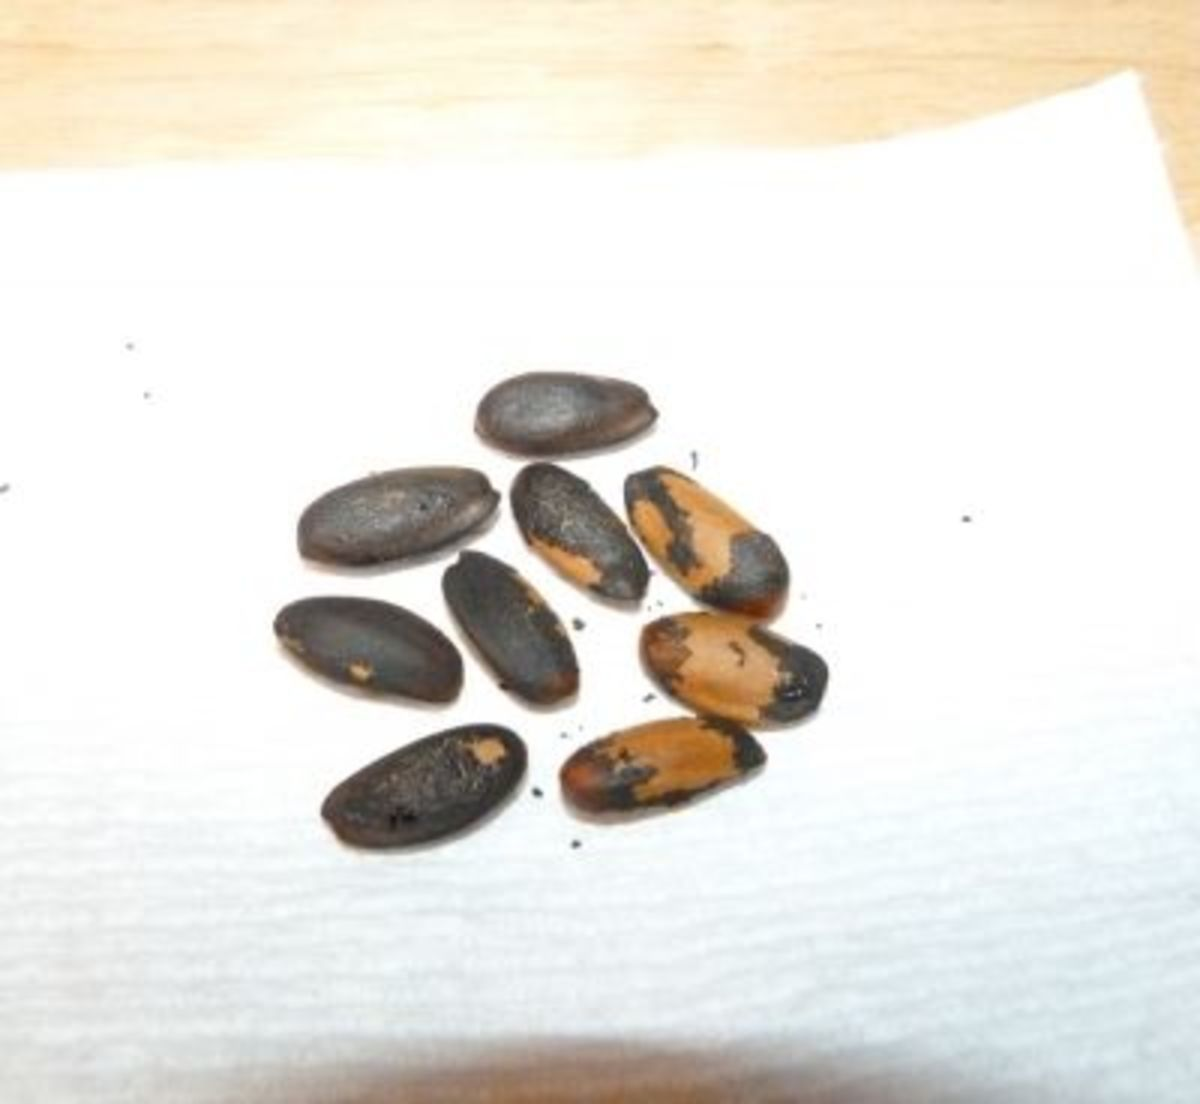 Gray pine cone nuts are about the size of almonds.